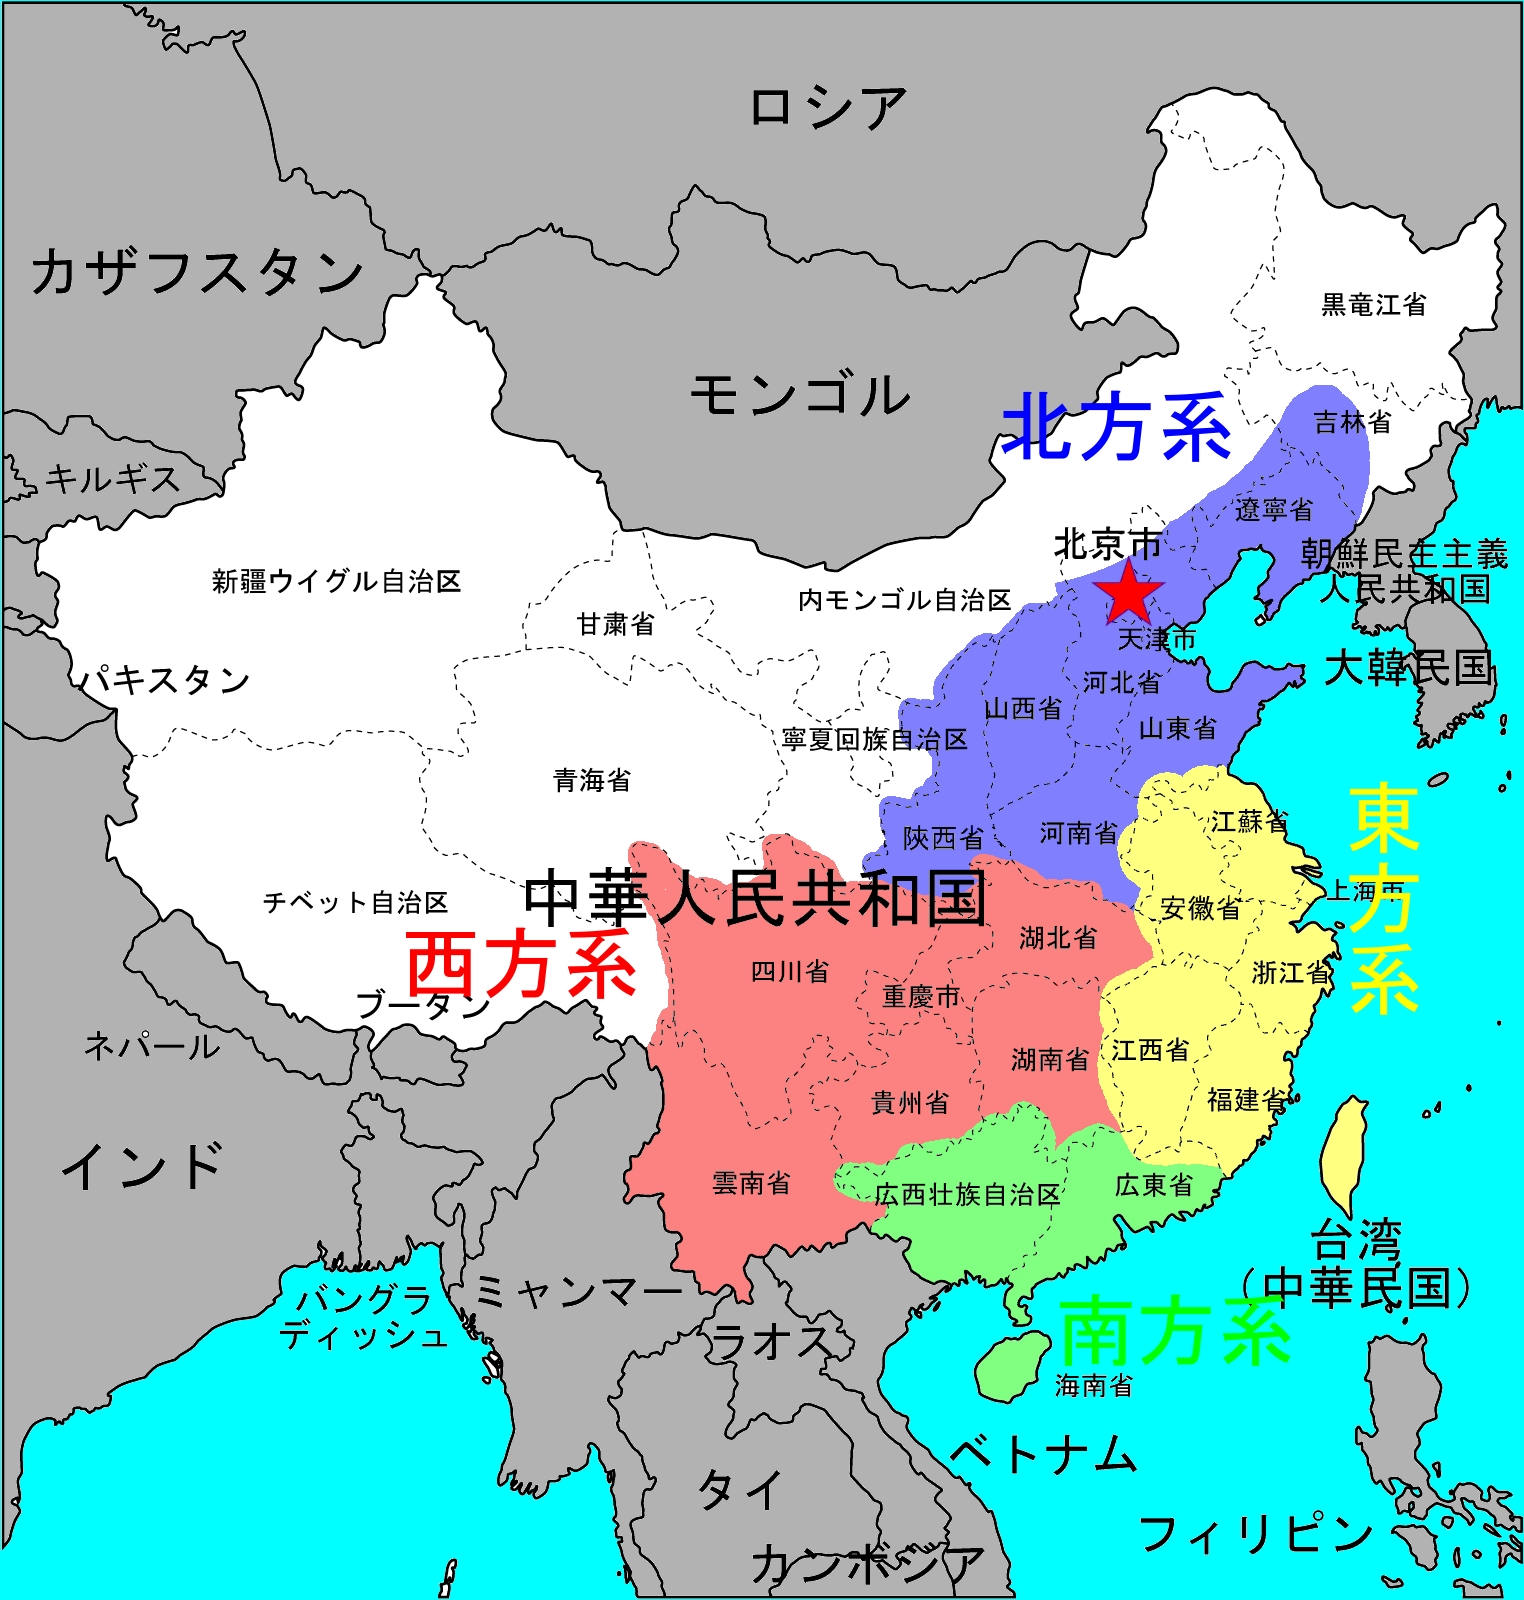 Asia Map with Country Names : 日本 地域区分 : 日本